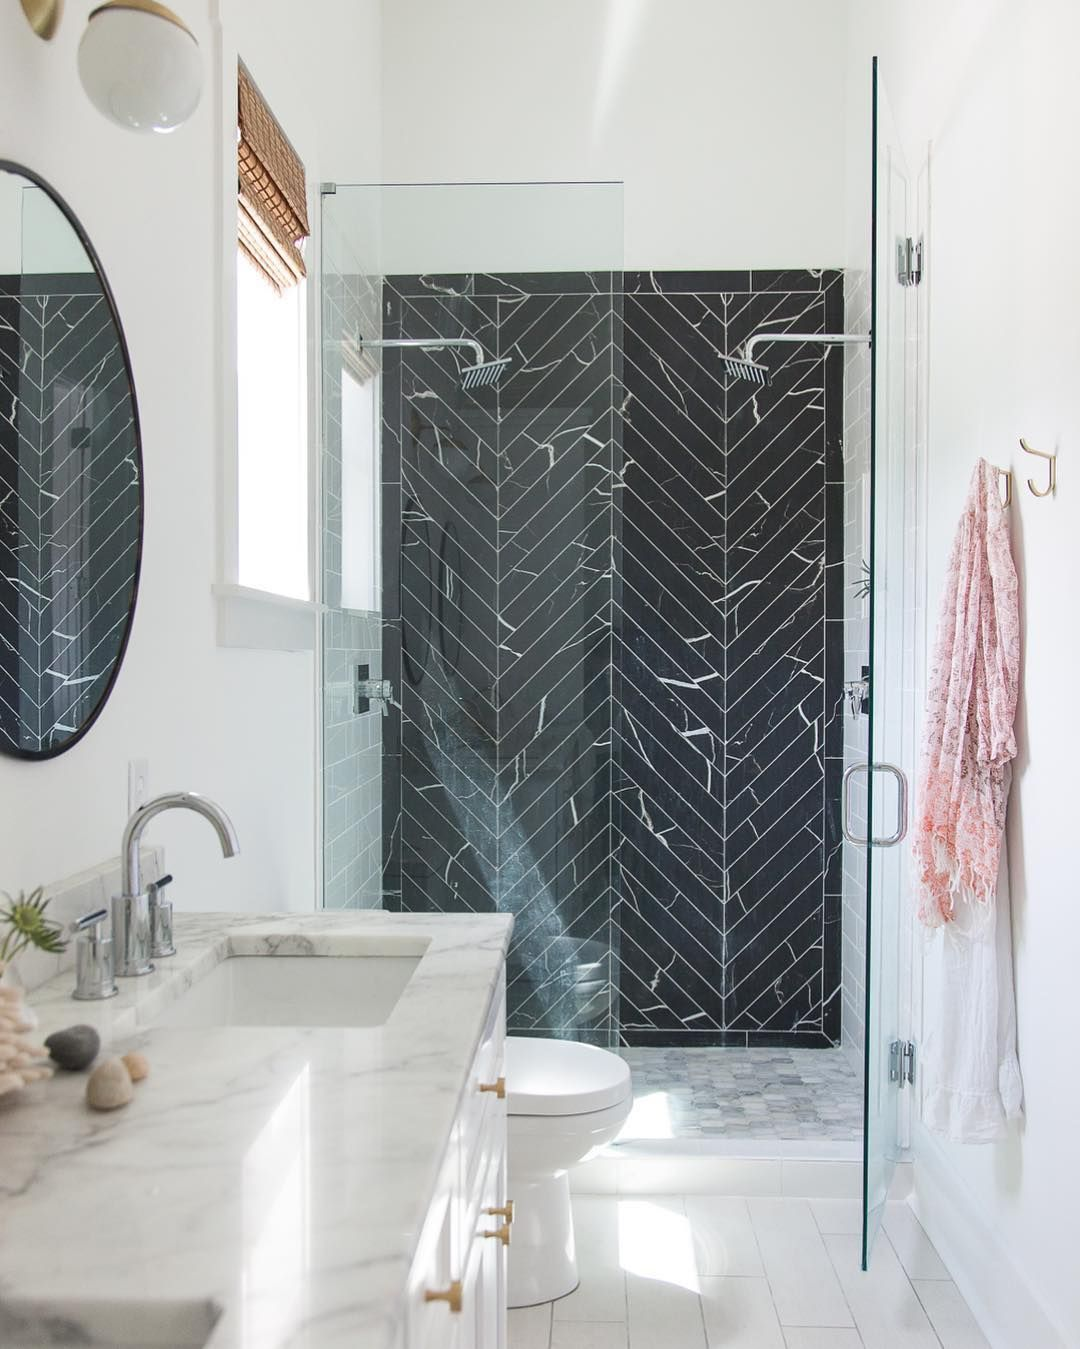 Bathroom shower with black marble herringbone tiles via @hannahcrowell